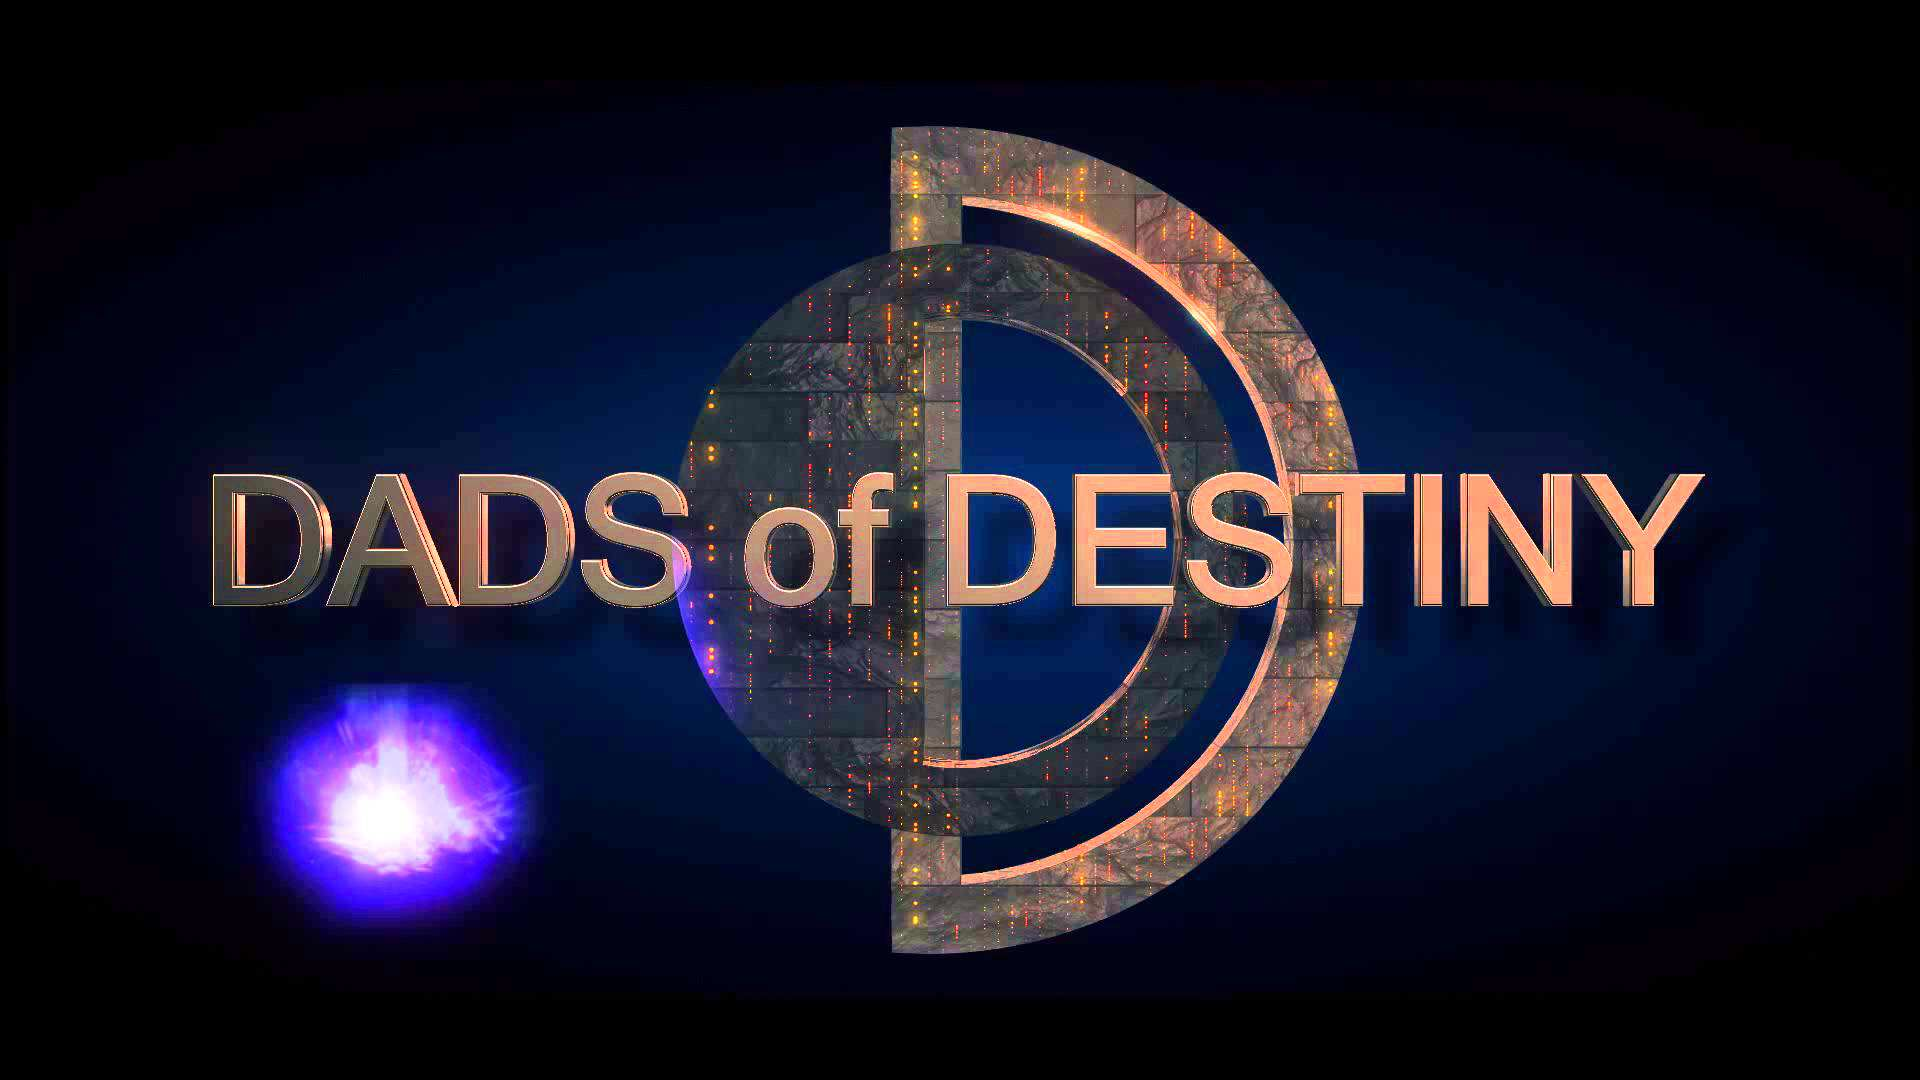 maxresdefault 1 16 This Destiny Clan Banded Together To Help A Family In Need